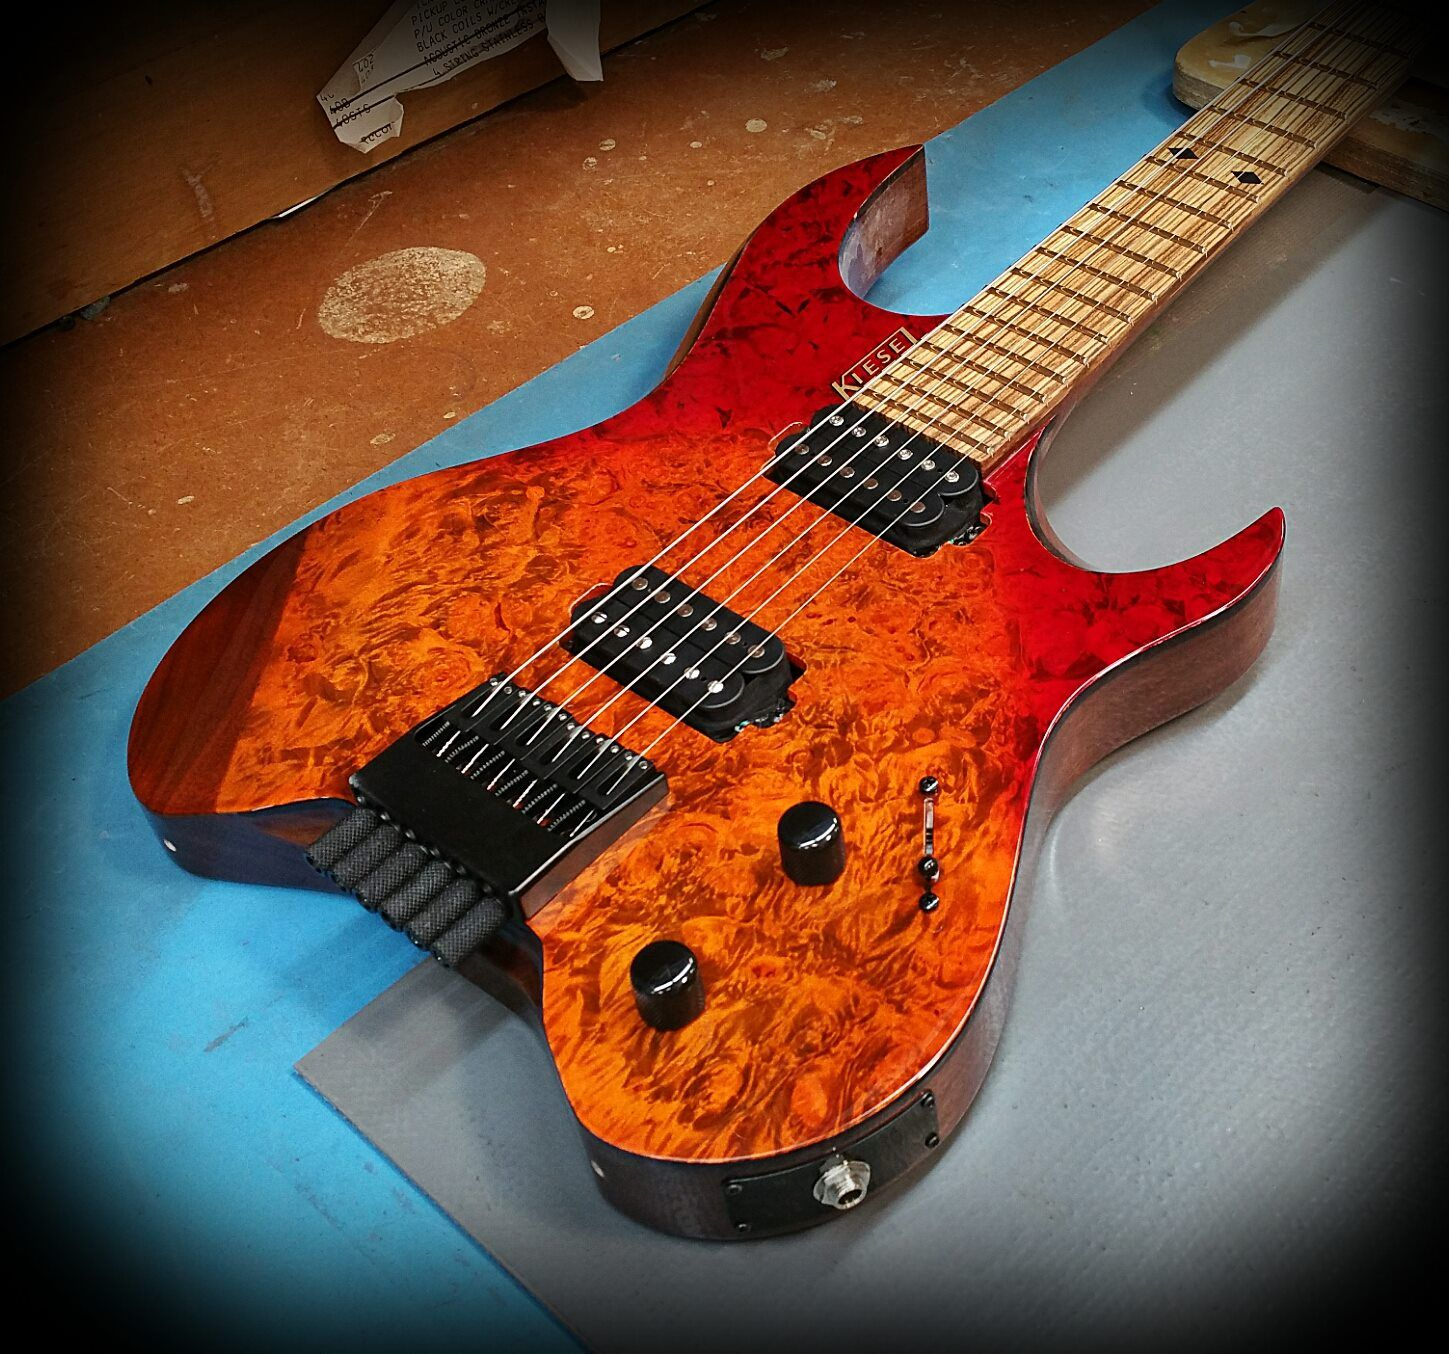 Kiesel Guitars Carvin Guitars V6 Vader headless series in a custom color v burst KieselIndividuelle GitarrenElektrische Guitarren